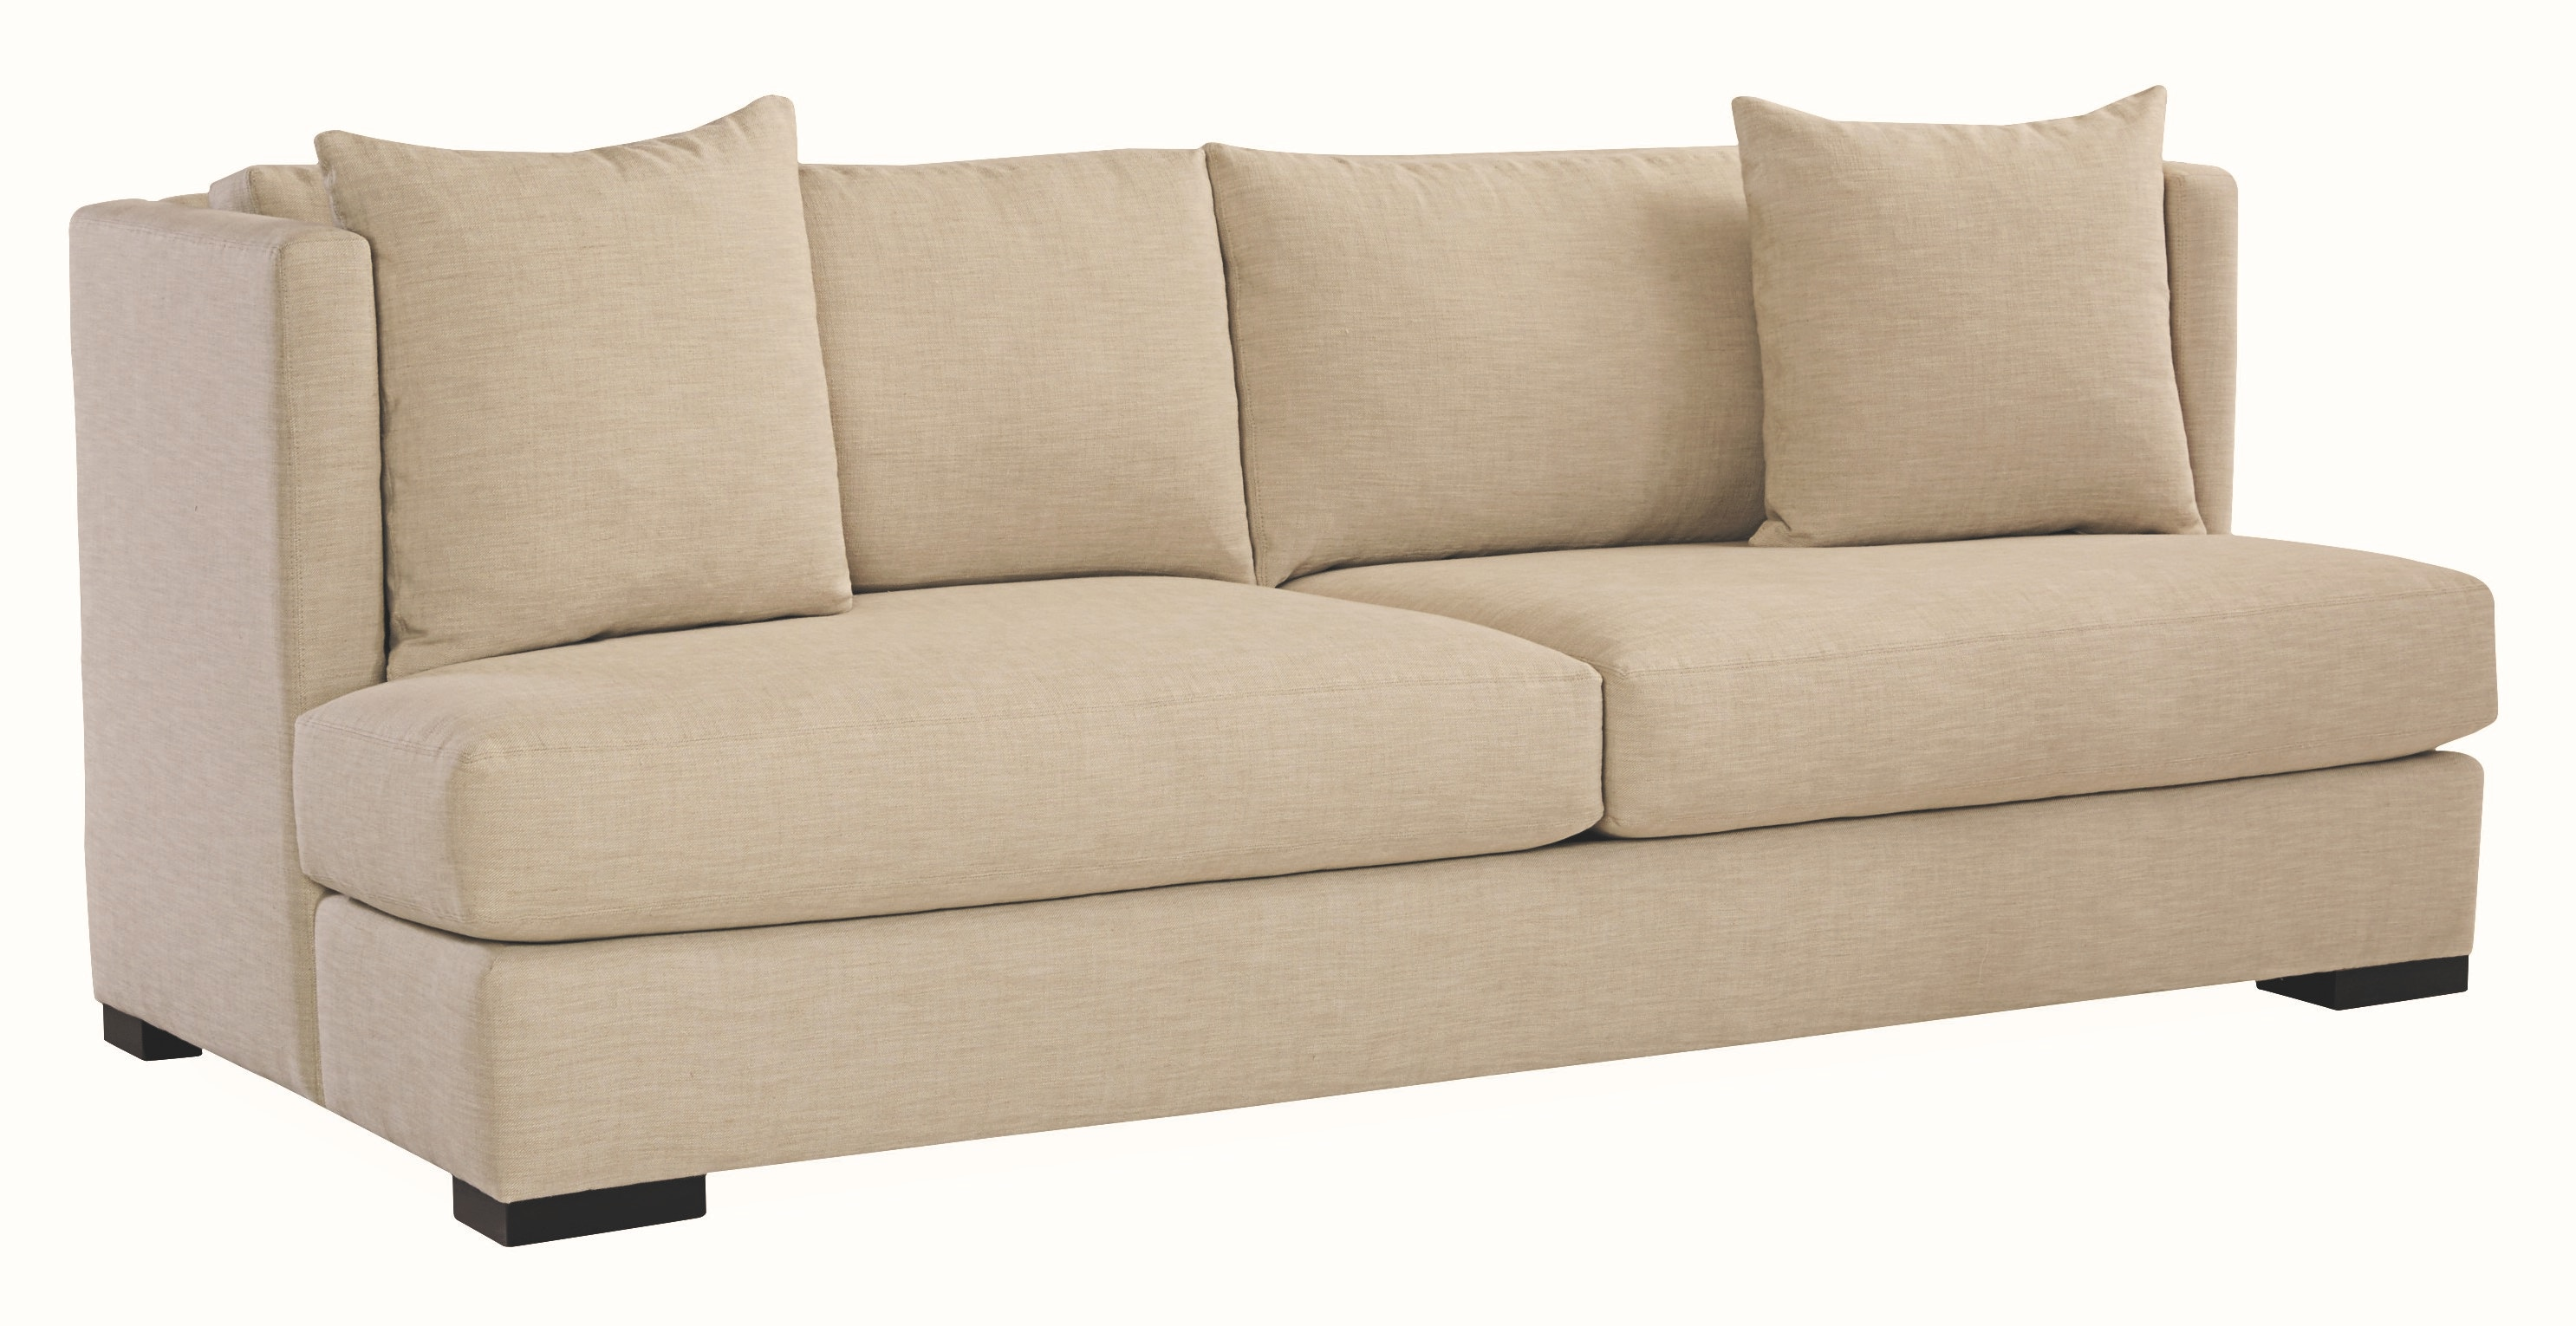 Lee Industries Sofa 7482 03